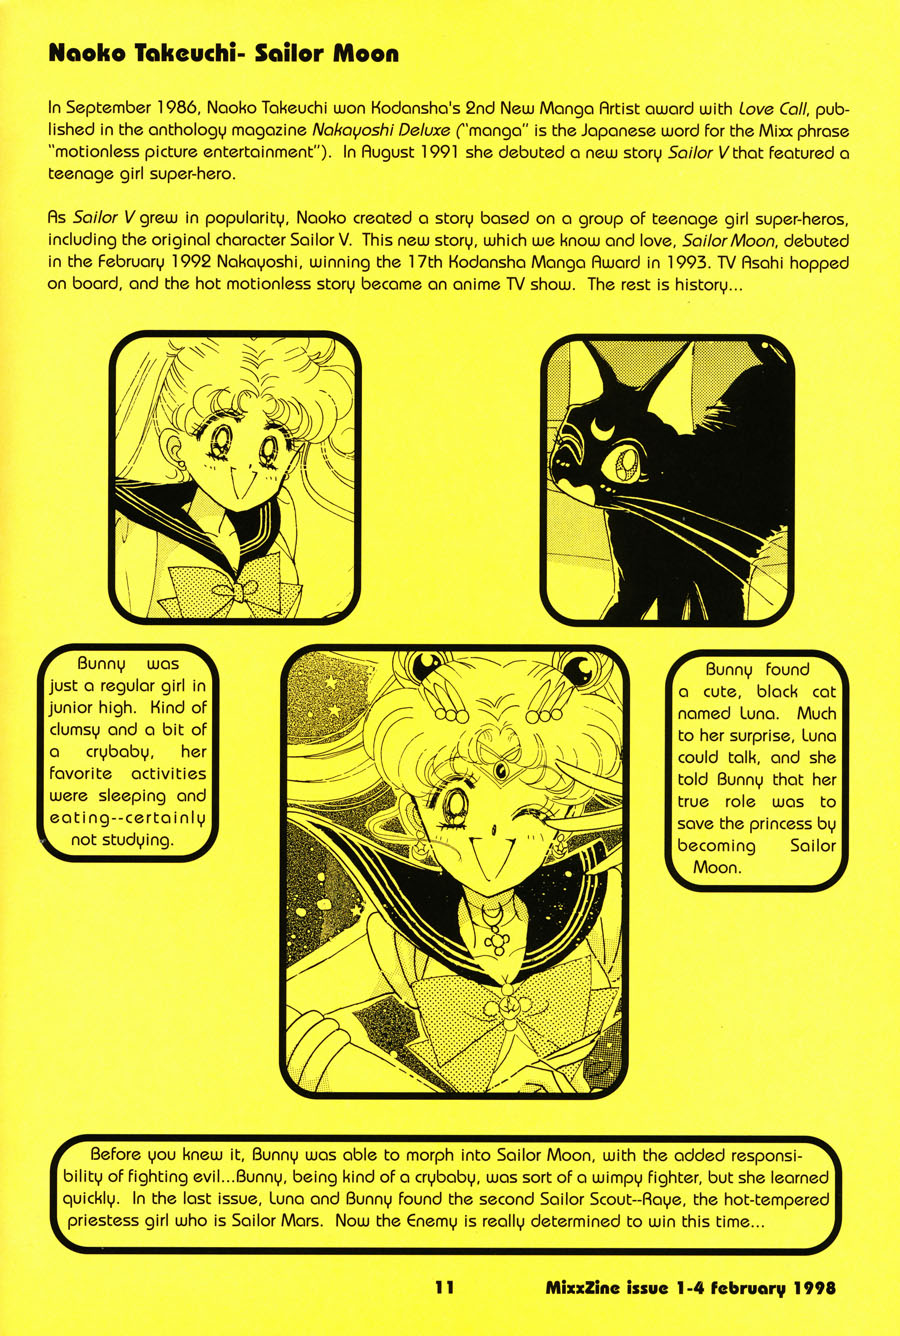 Naoko-Takeuchi-Sailor-Moon-MixxZine